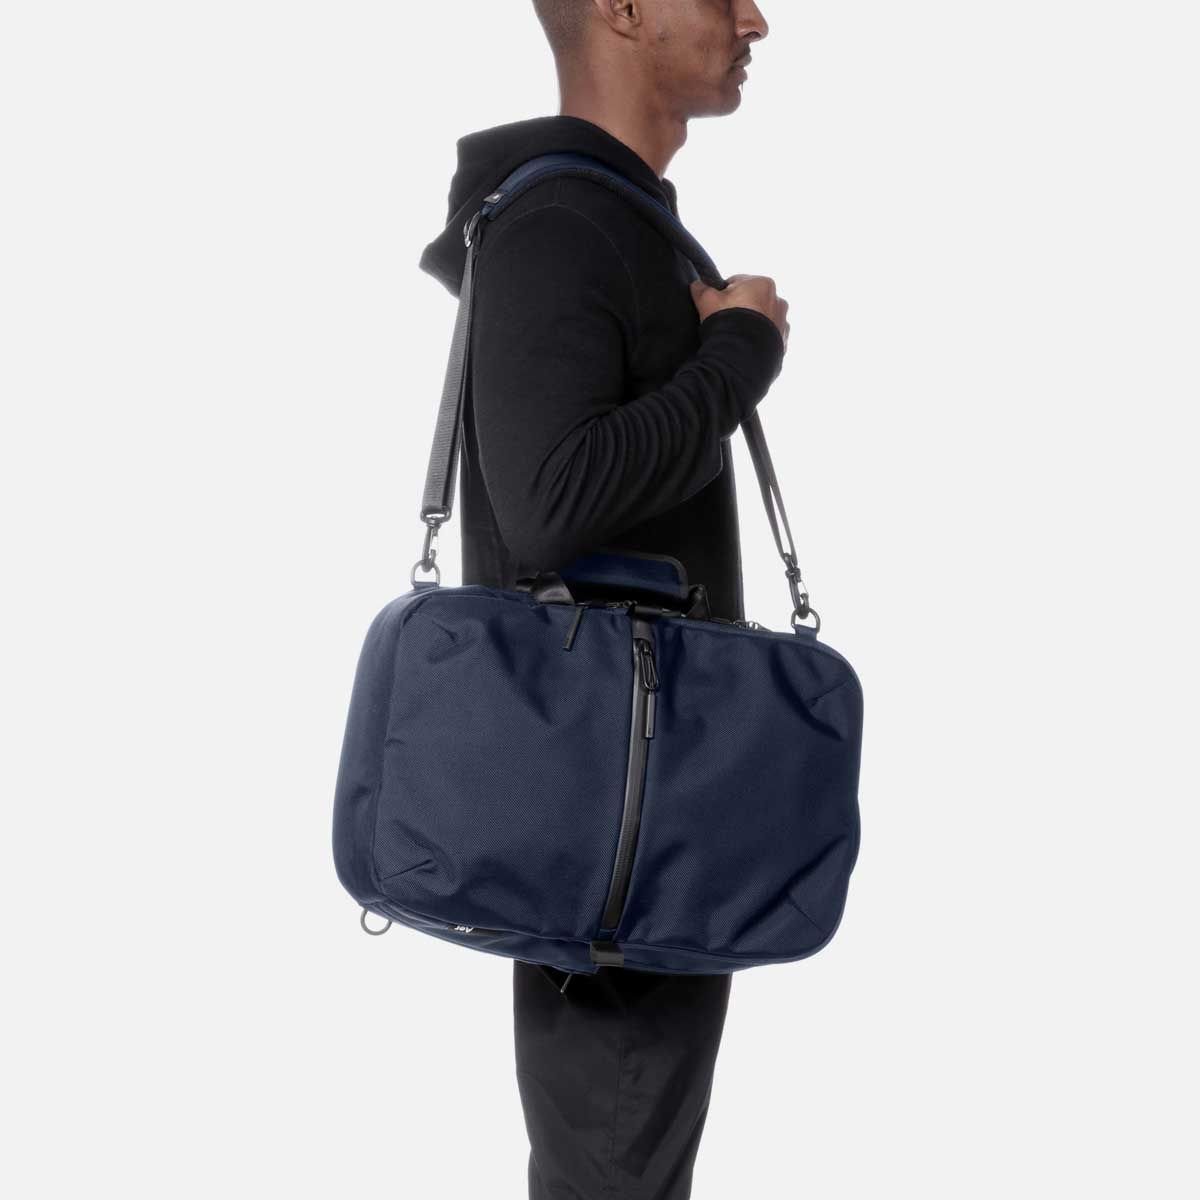 Converts to a shoulder bag or brief for work meetings.